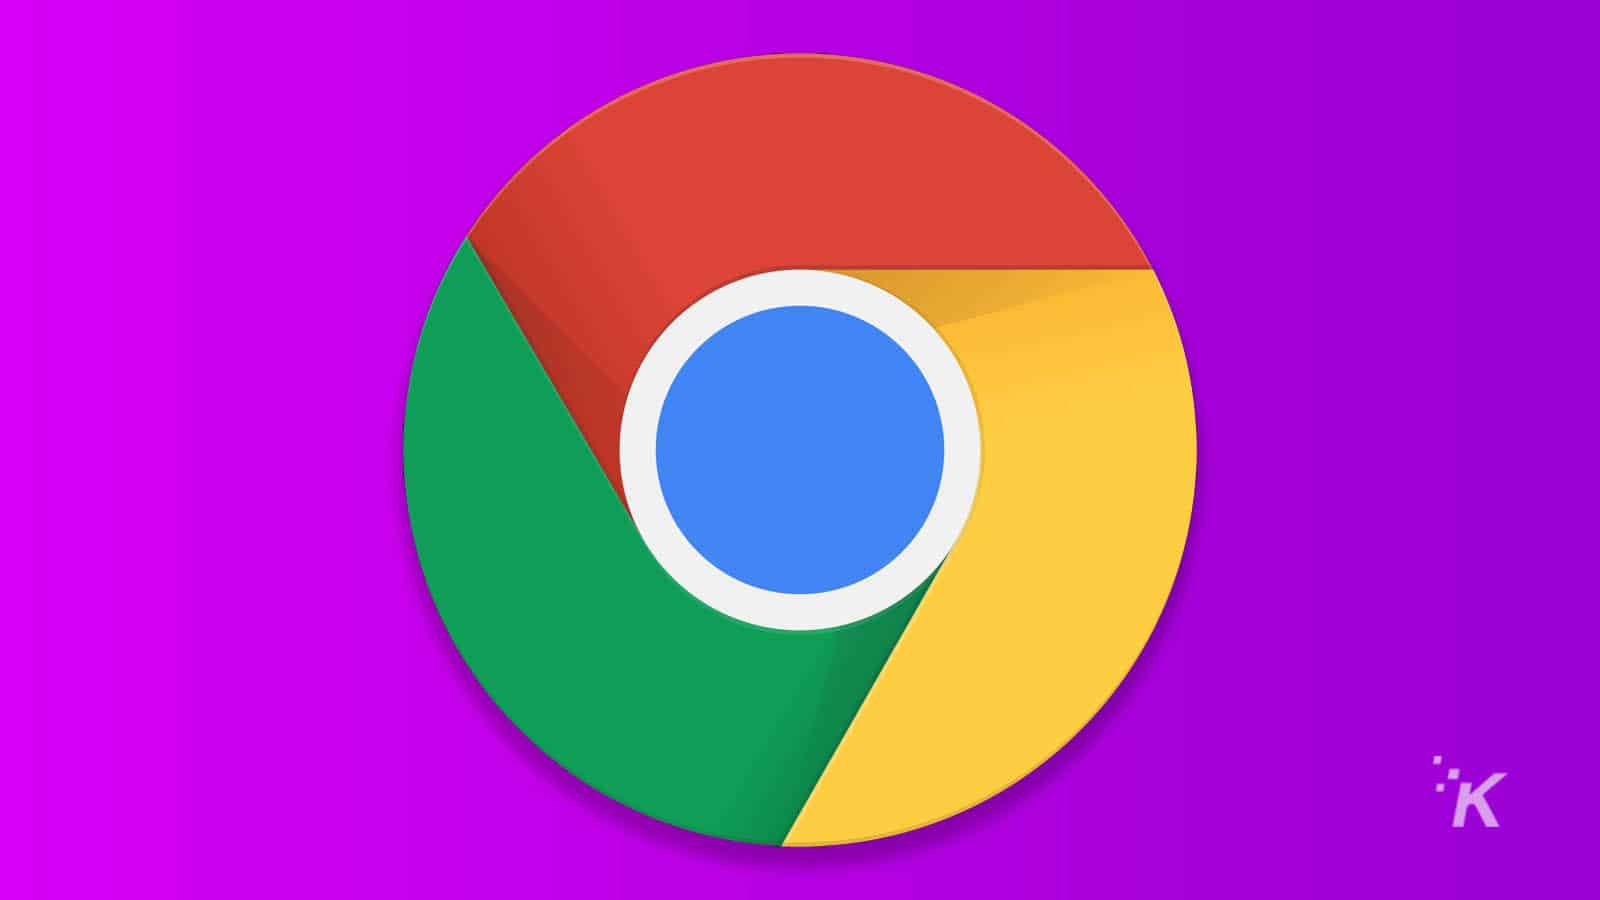 google chrome logo on purple background for google search